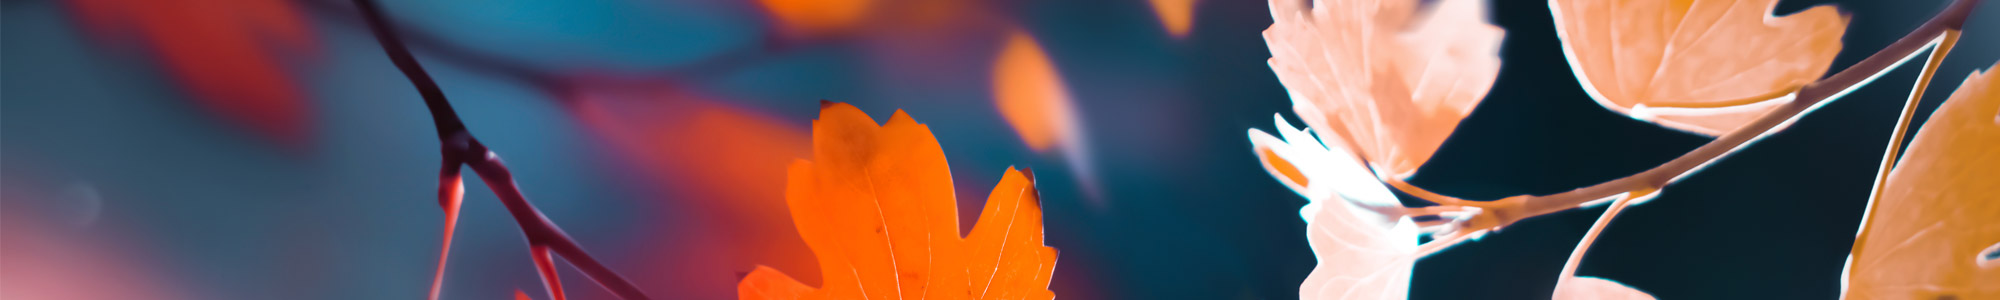 close up of sunlight coming through autumn leaves